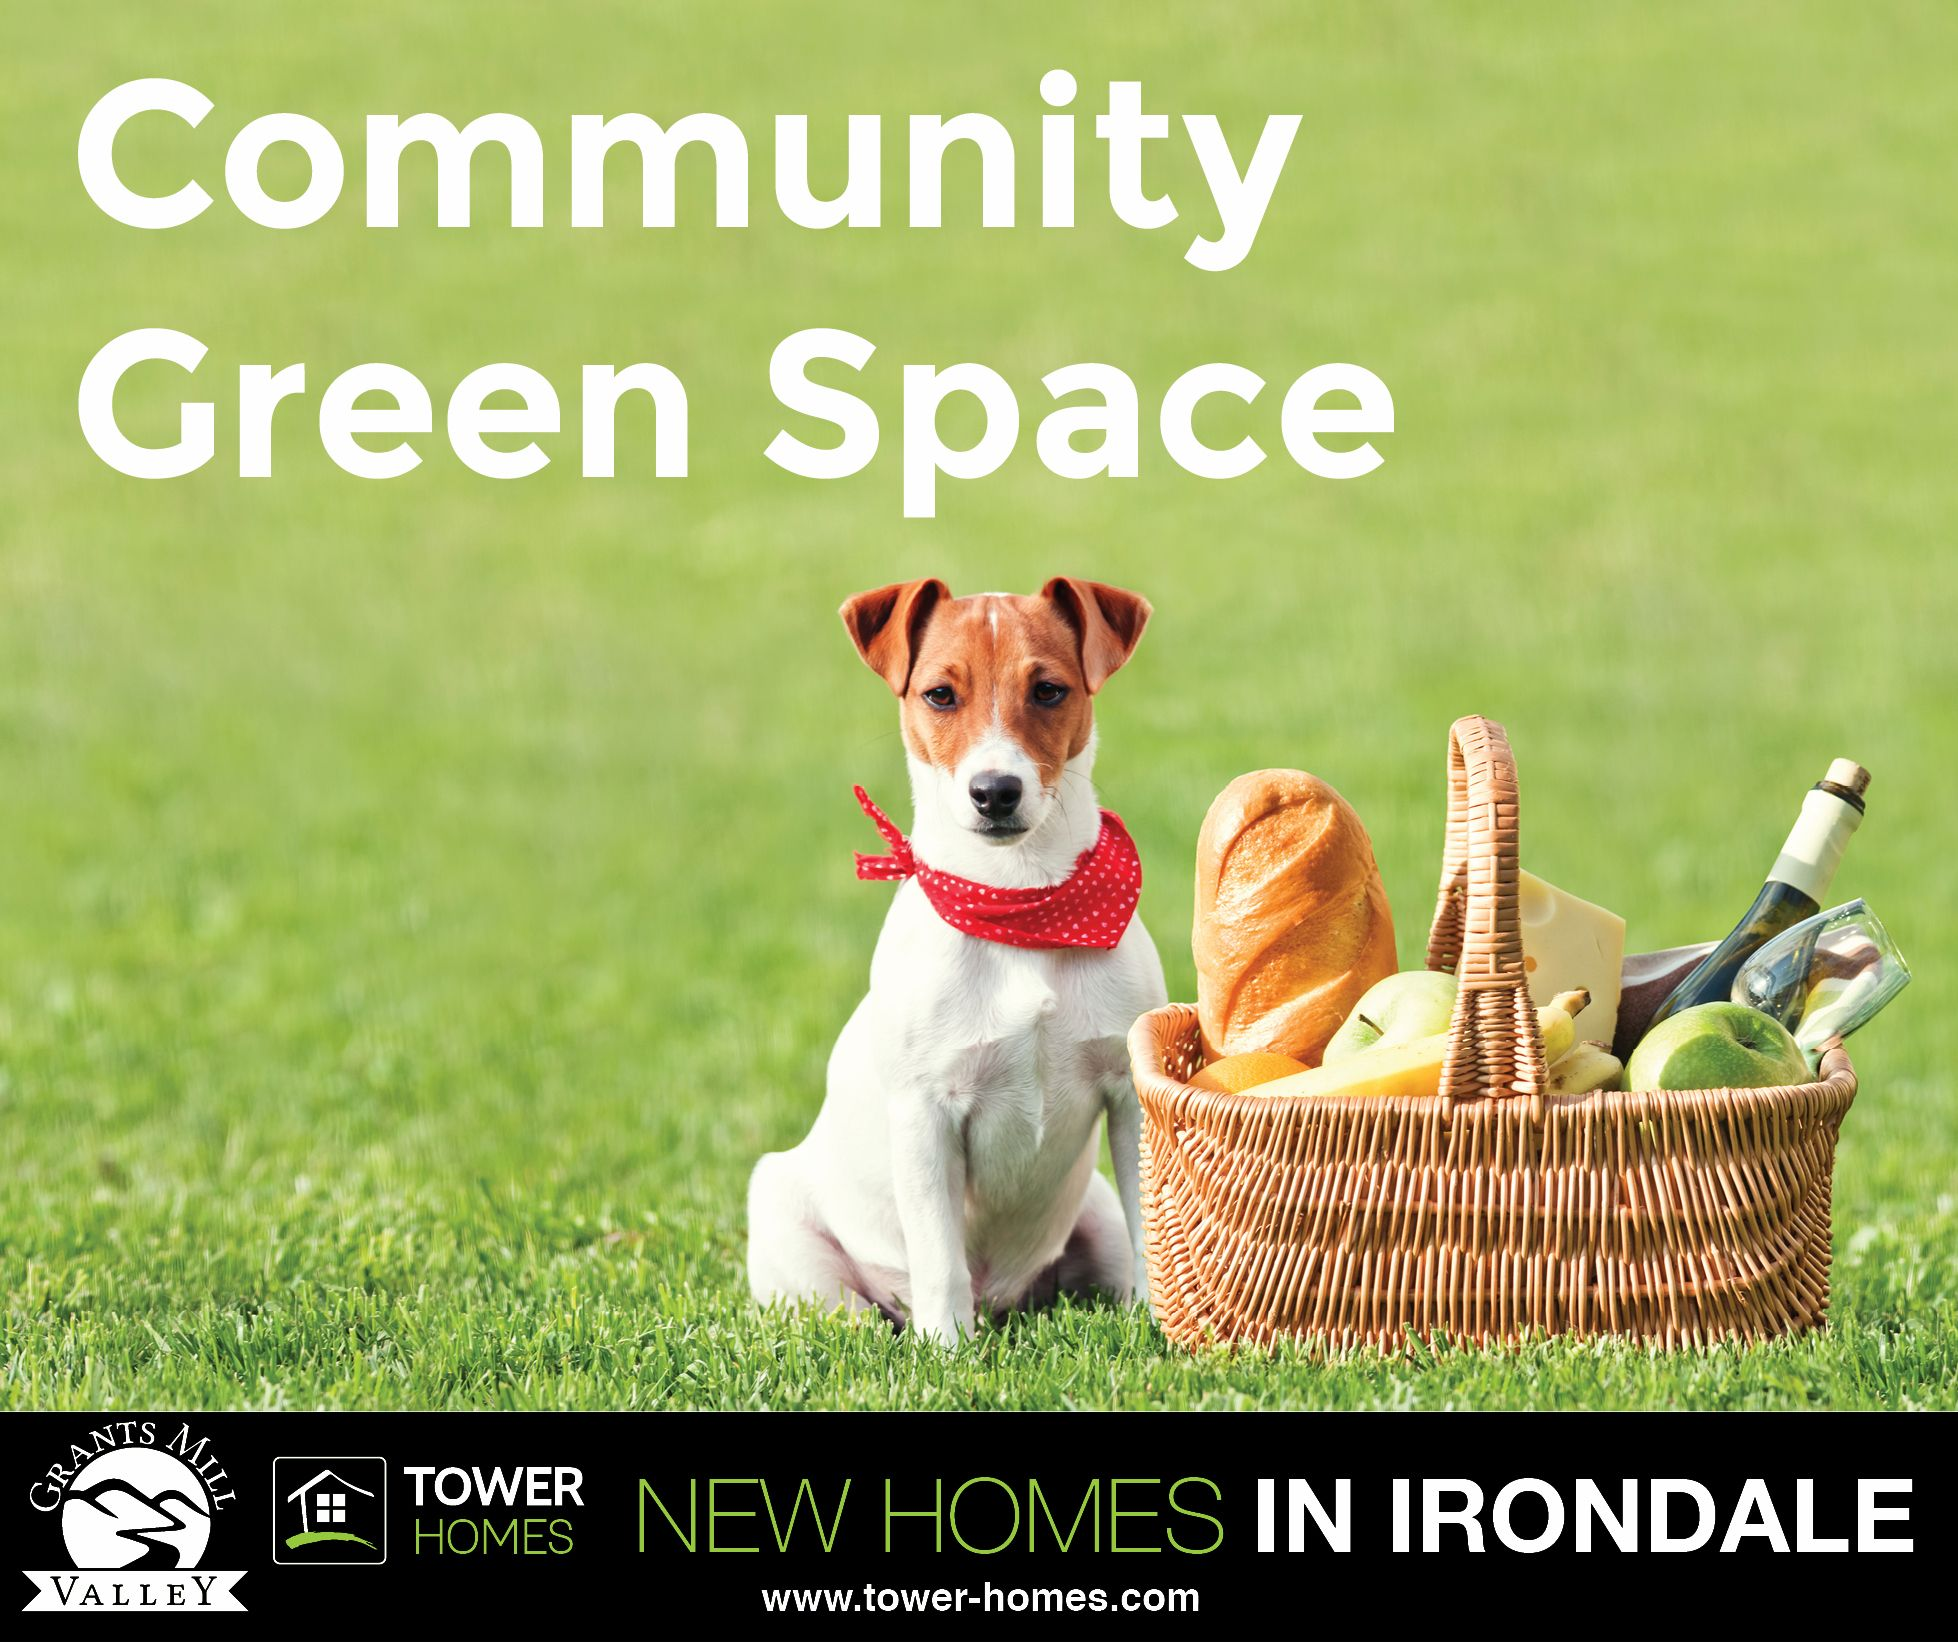 Grants Mill Valley New Homes in Irondale (With images